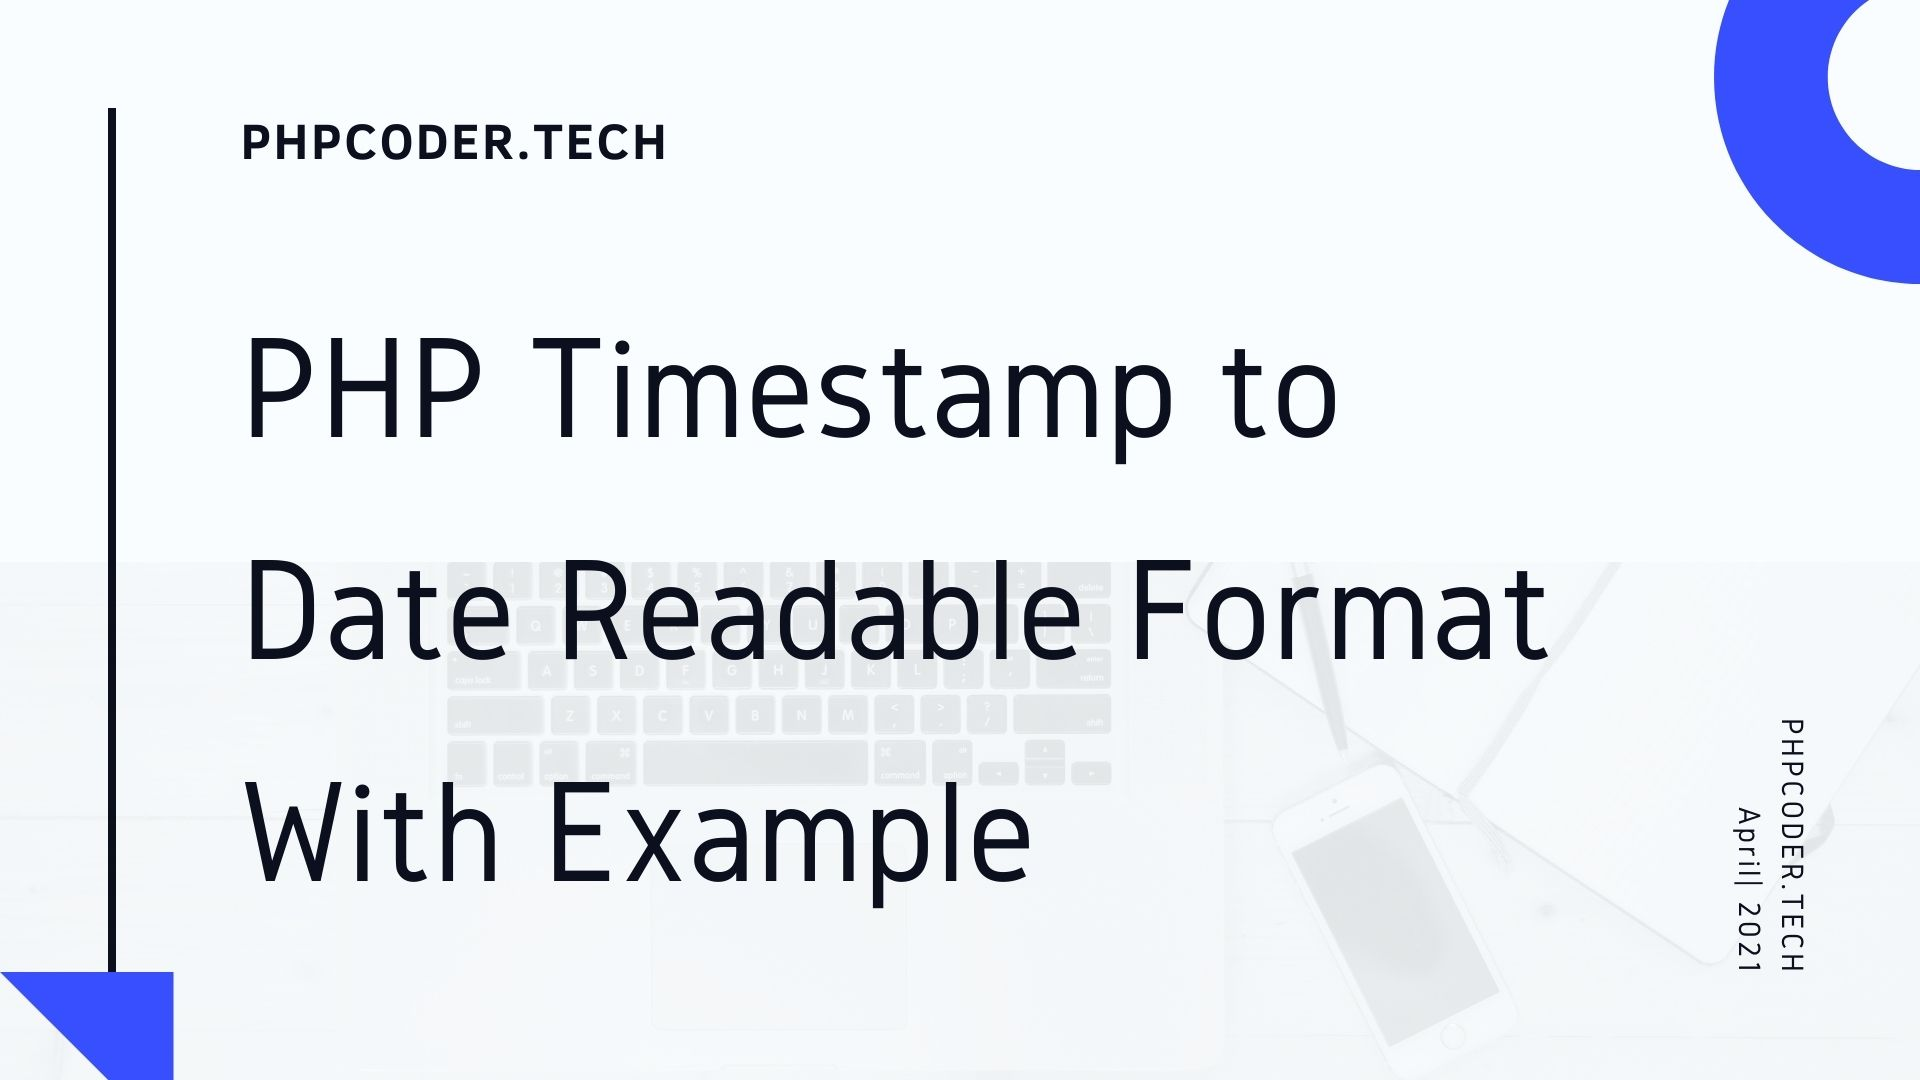 PHP Timestamp to Date Readable Format With Example - PHPCODER